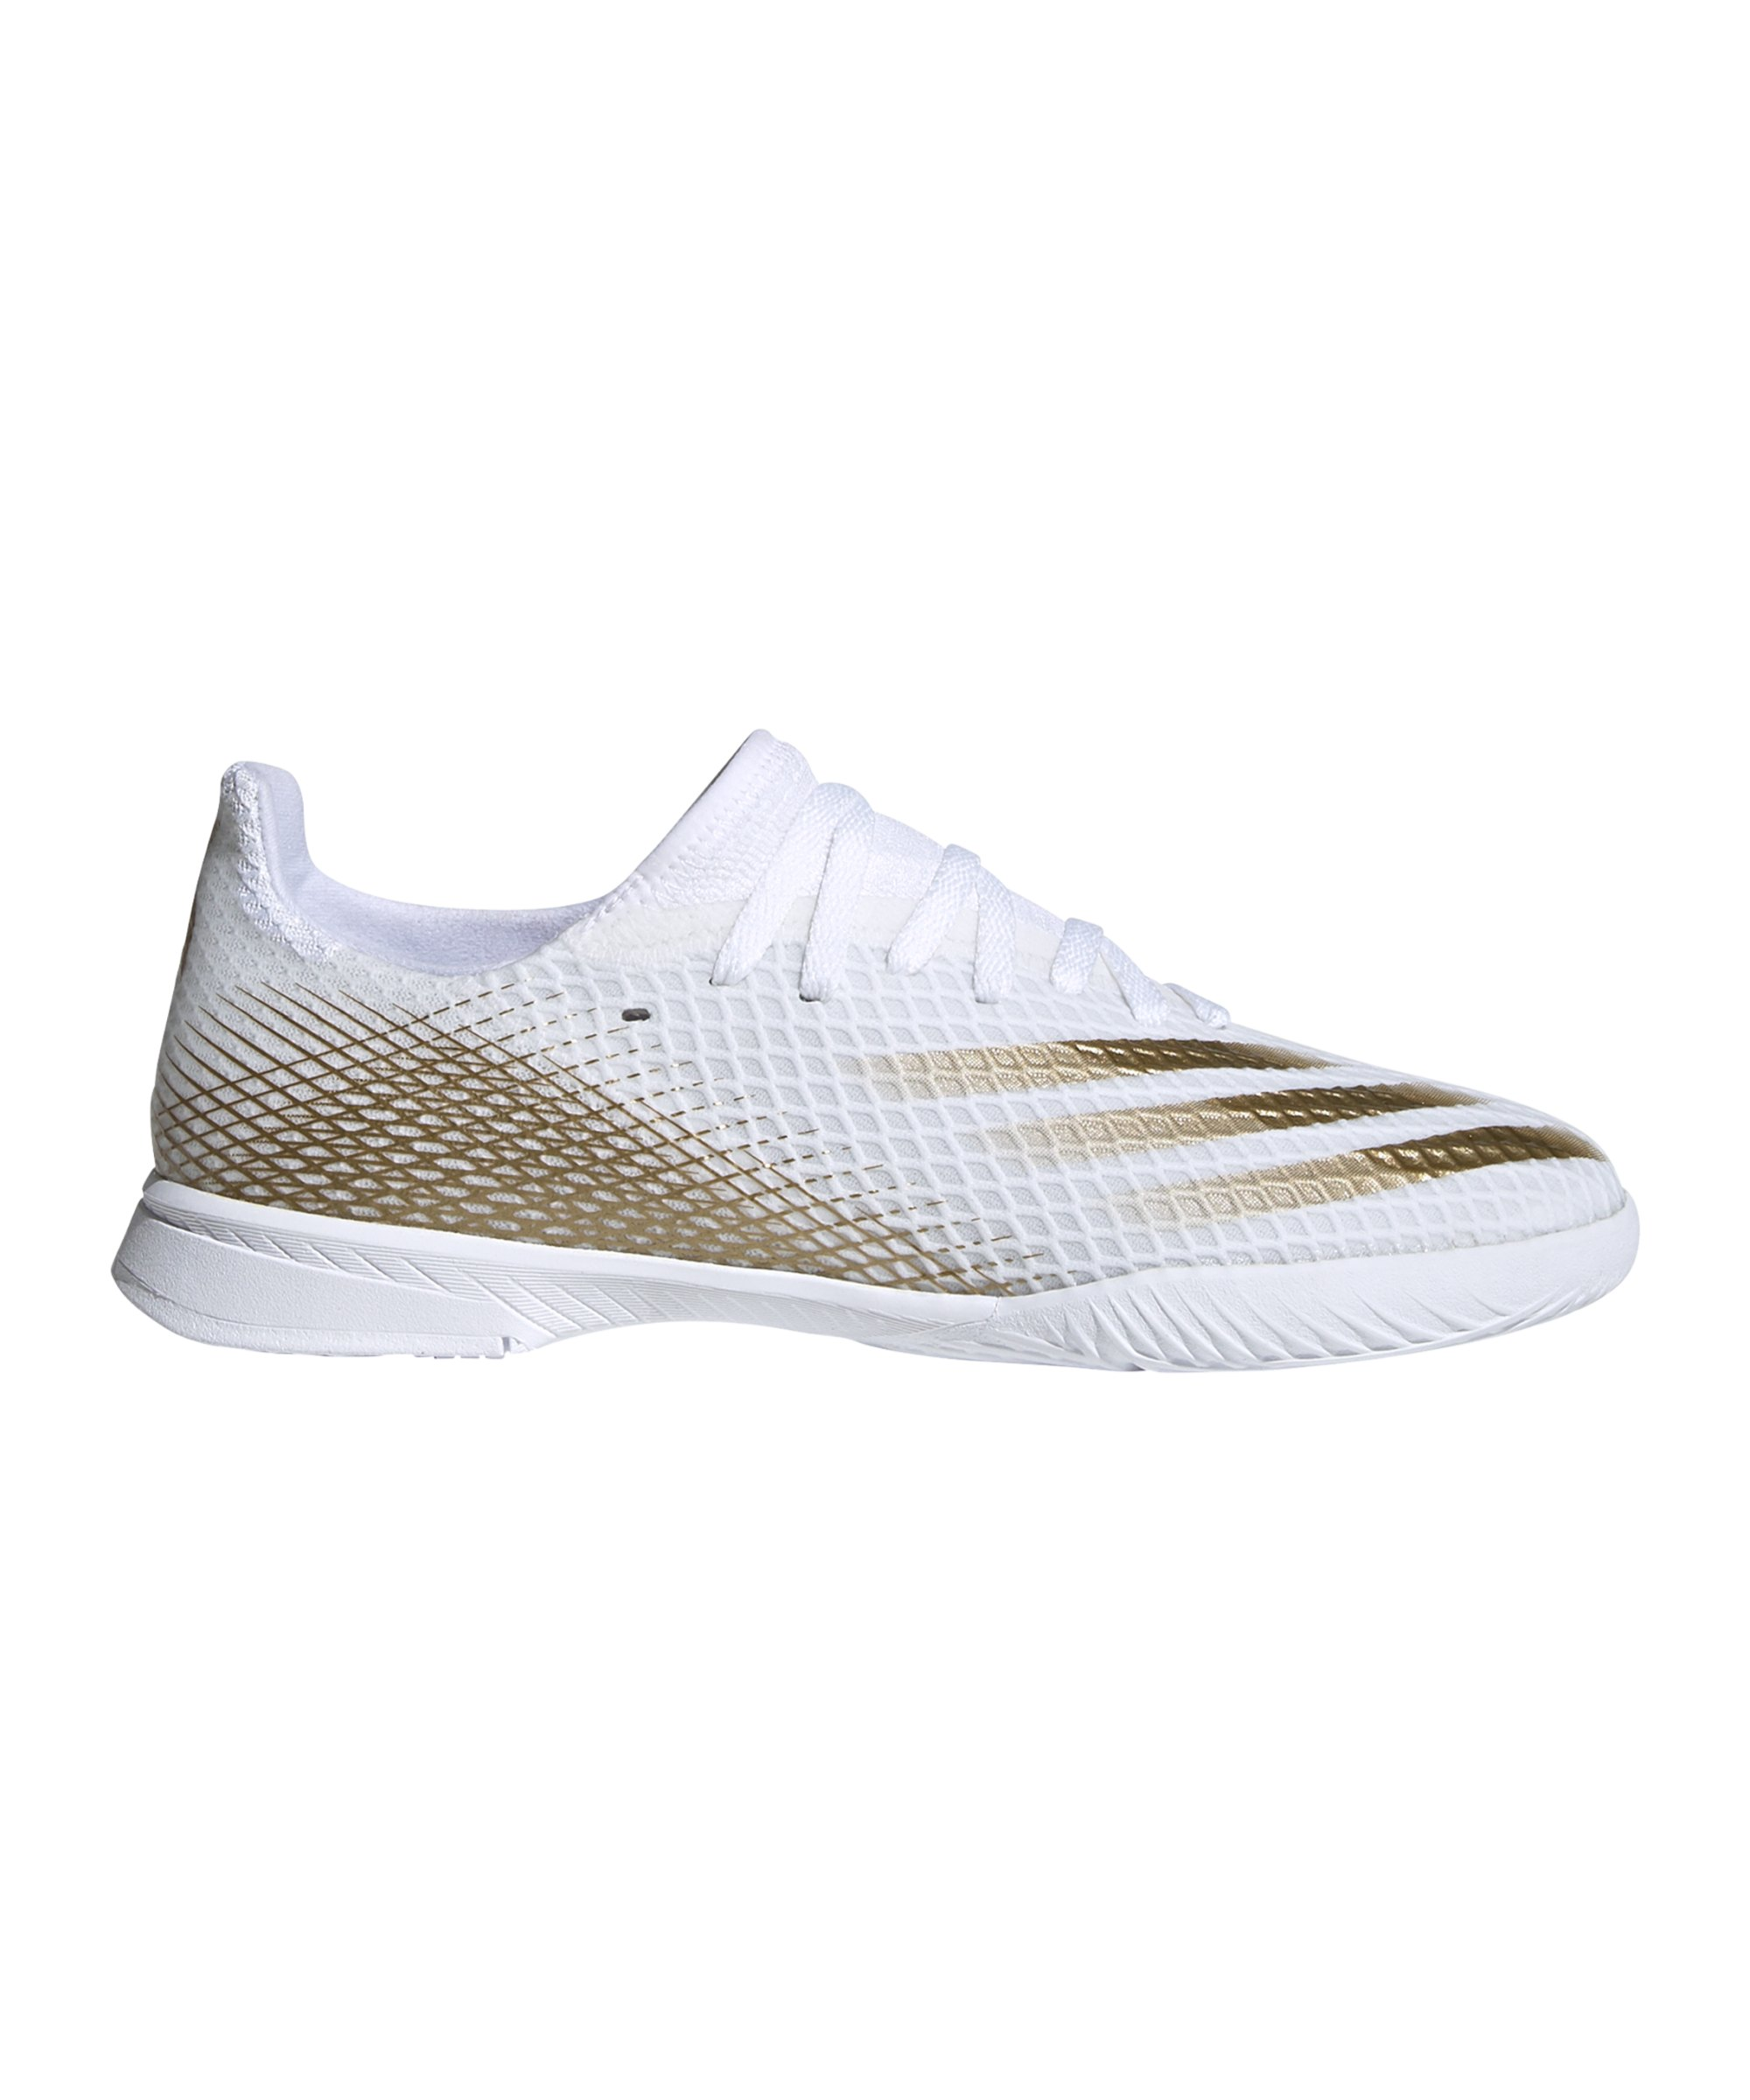 adidas X GHOSTED.3 LL IN Halle Inflight J Kids - weiss